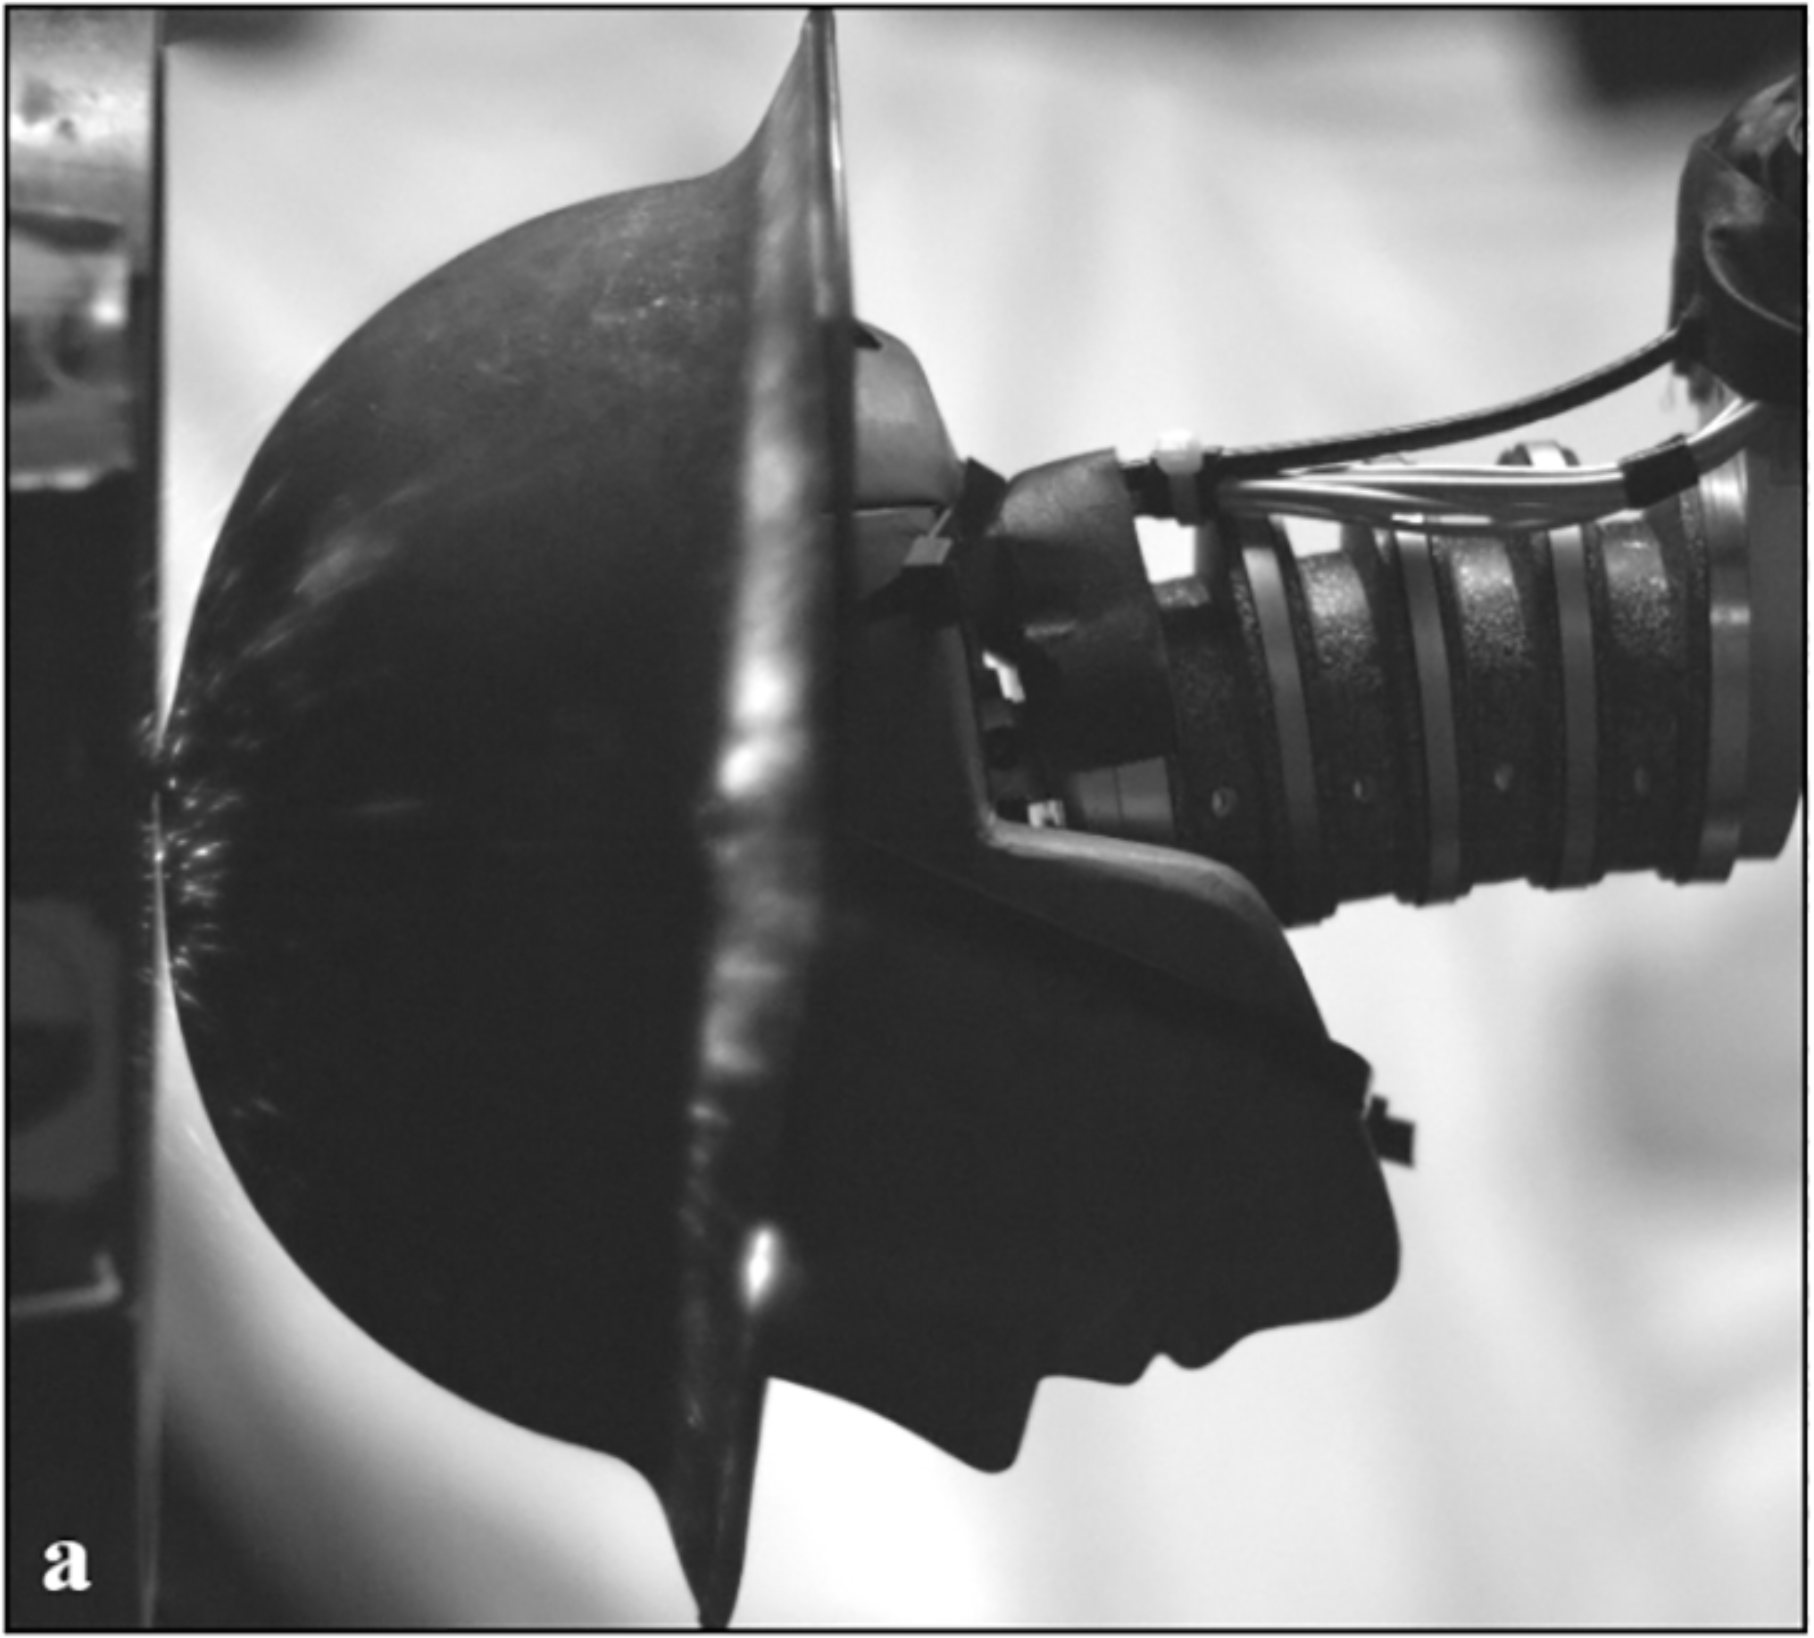 Researchers Find a Flaw in Modern Military Helmets